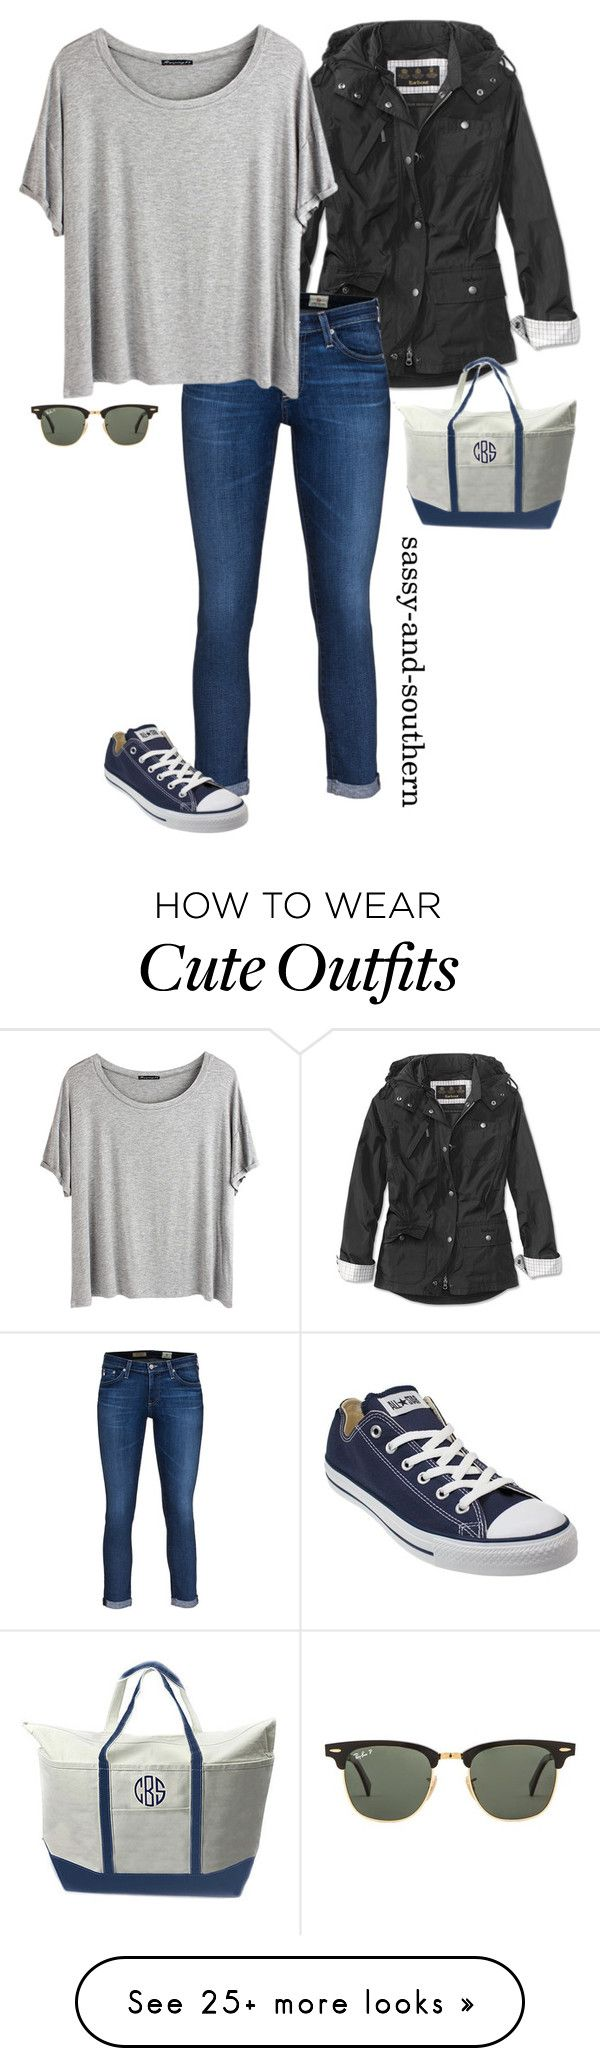 """cute fall outfit"" by sassy-and-southern on Polyvore featuring Barbour, AG Adriano Goldschmied, Chicnova Fashion, Ray-Ban, CB Station, Converse, converse, rayban and sassysouthernfall"